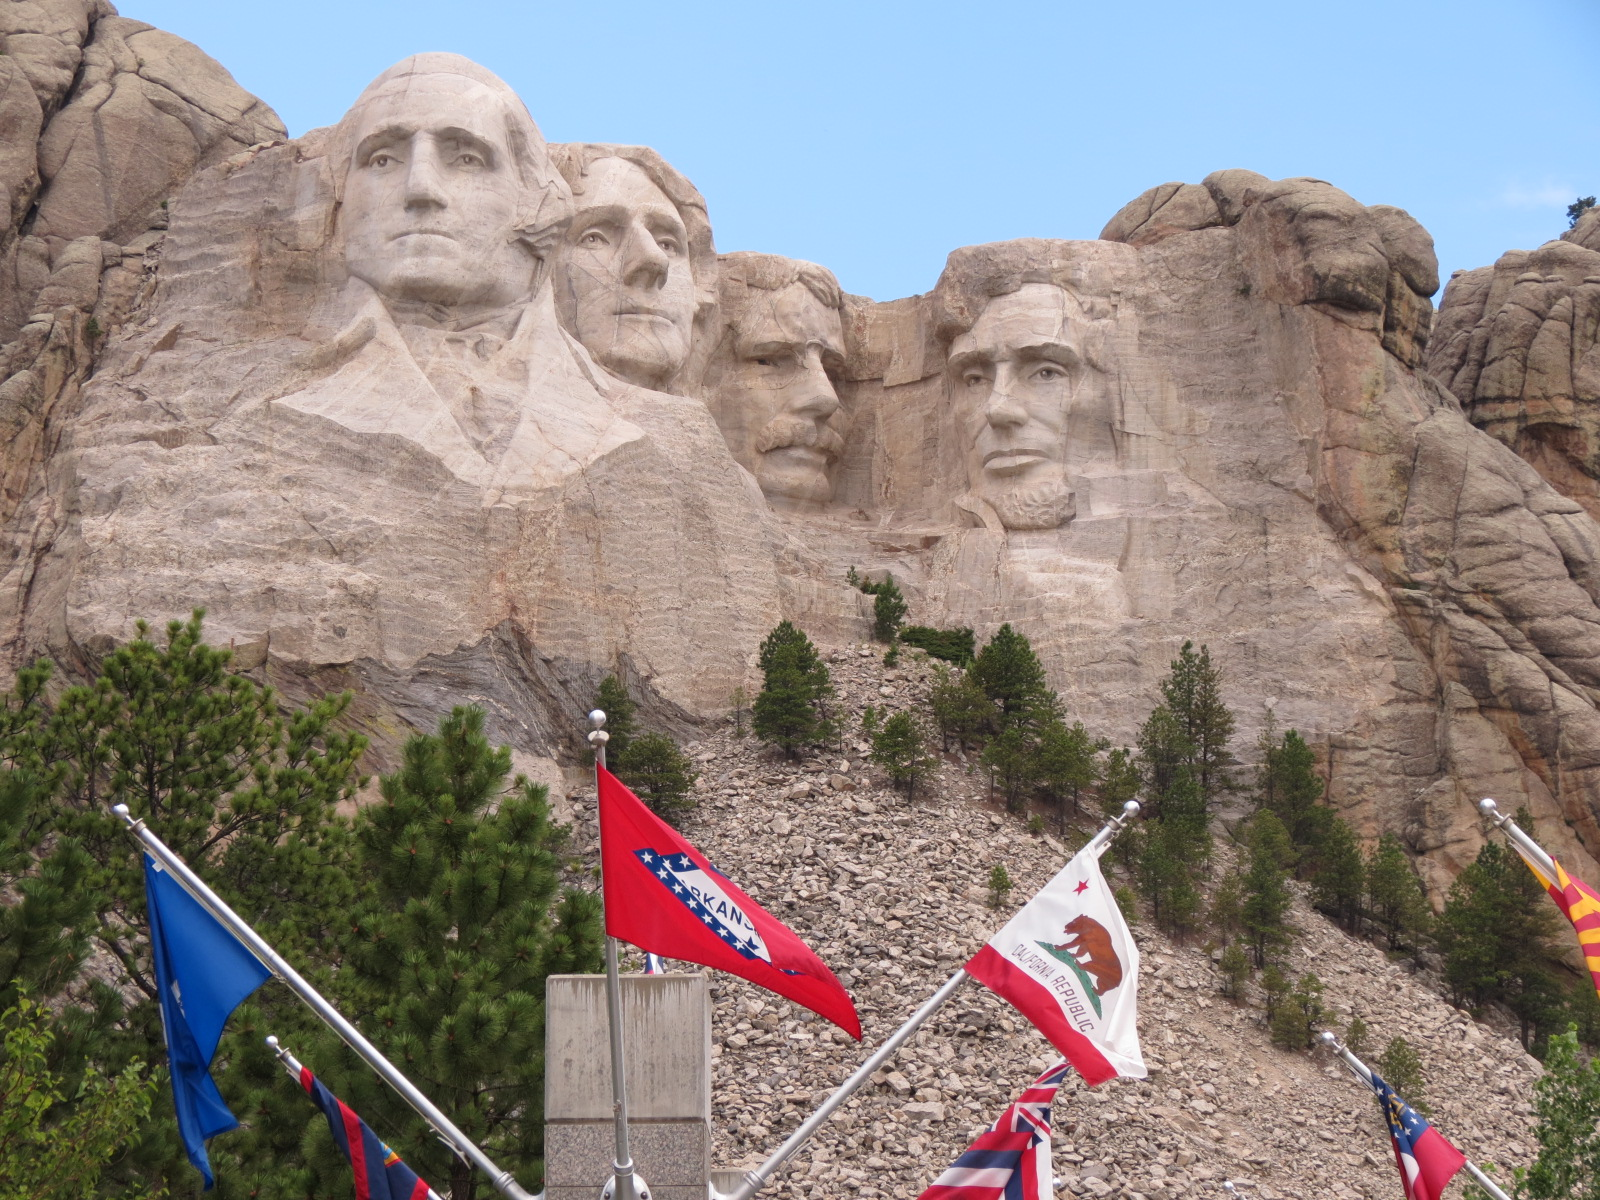 Mount Rushmore, had to capture the Arkansas Flag in the picture.